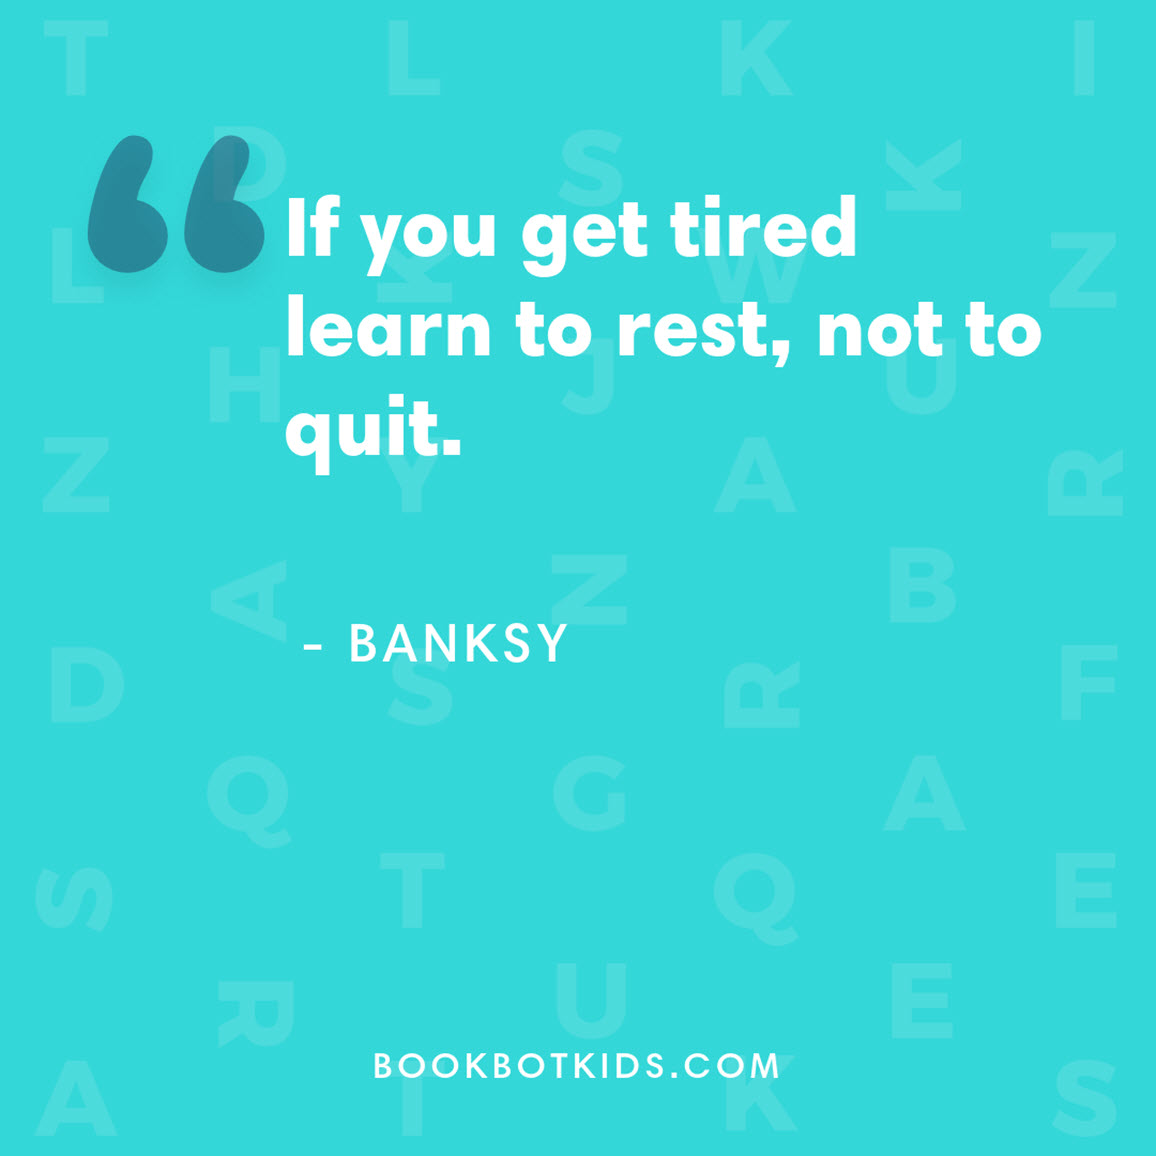 If you get tired learn to rest, not to quit. – Banksy